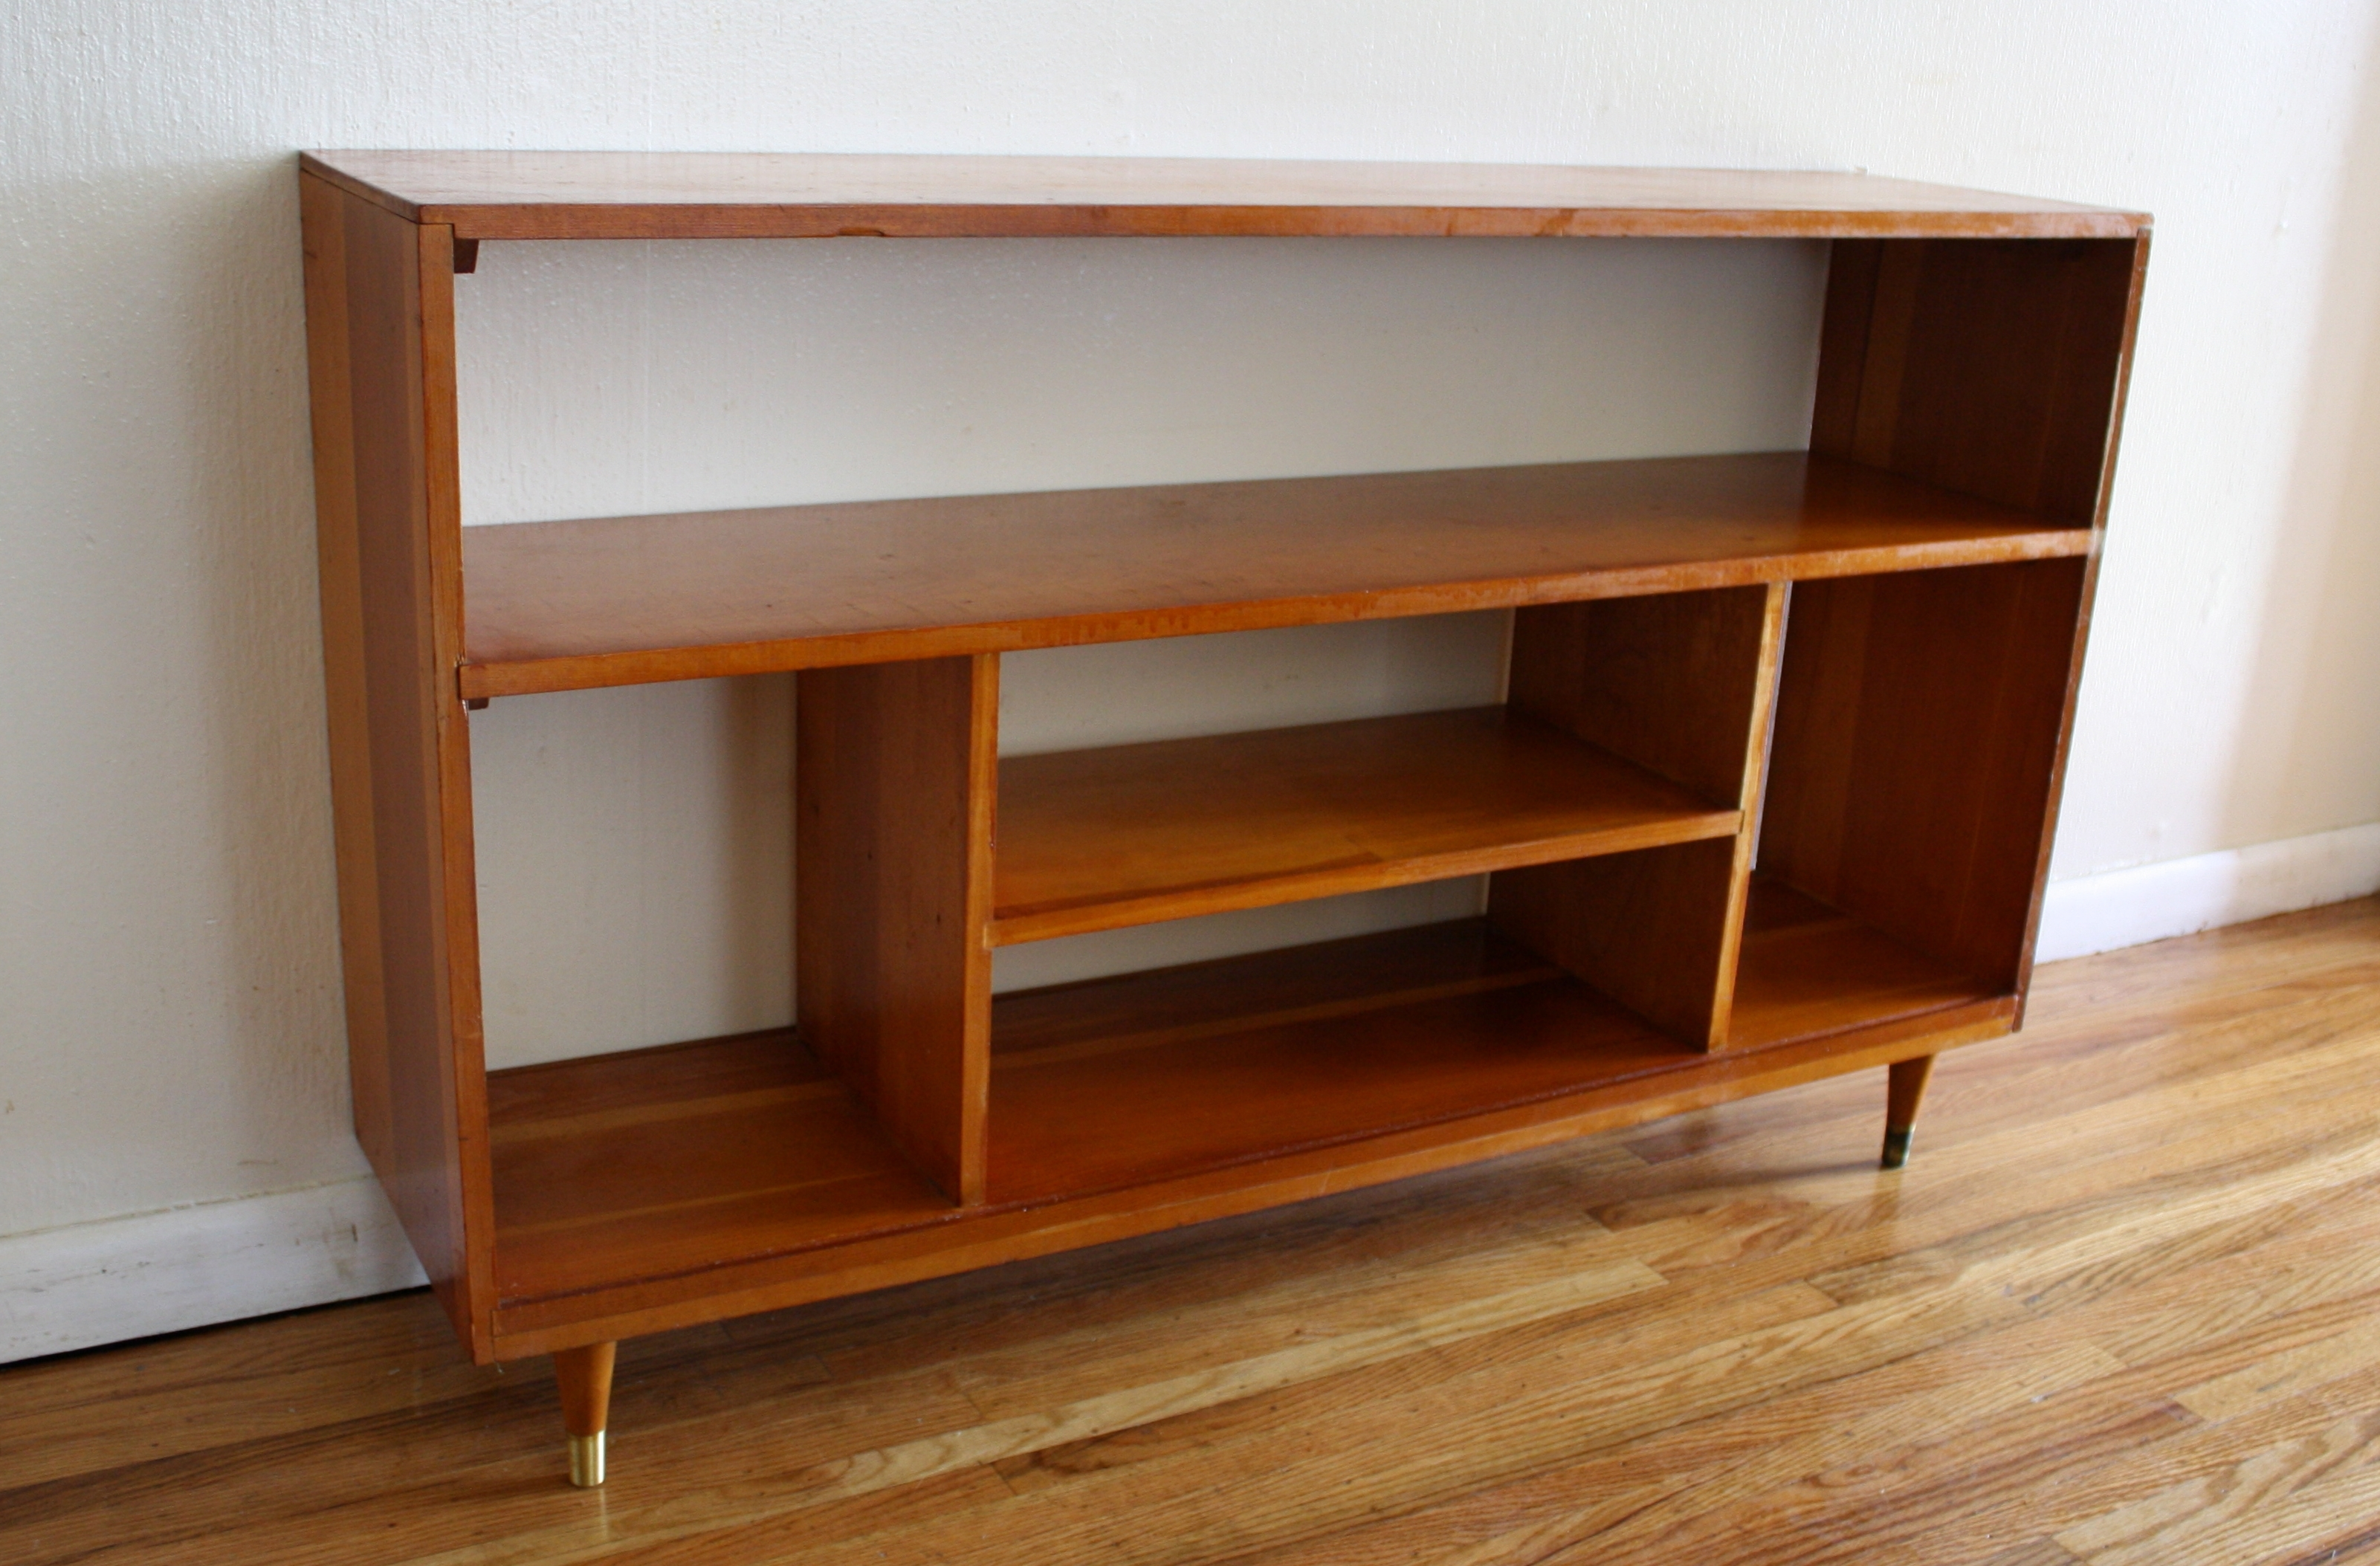 Newest Mid Century Modern Bookshelves (View 2 of 15)